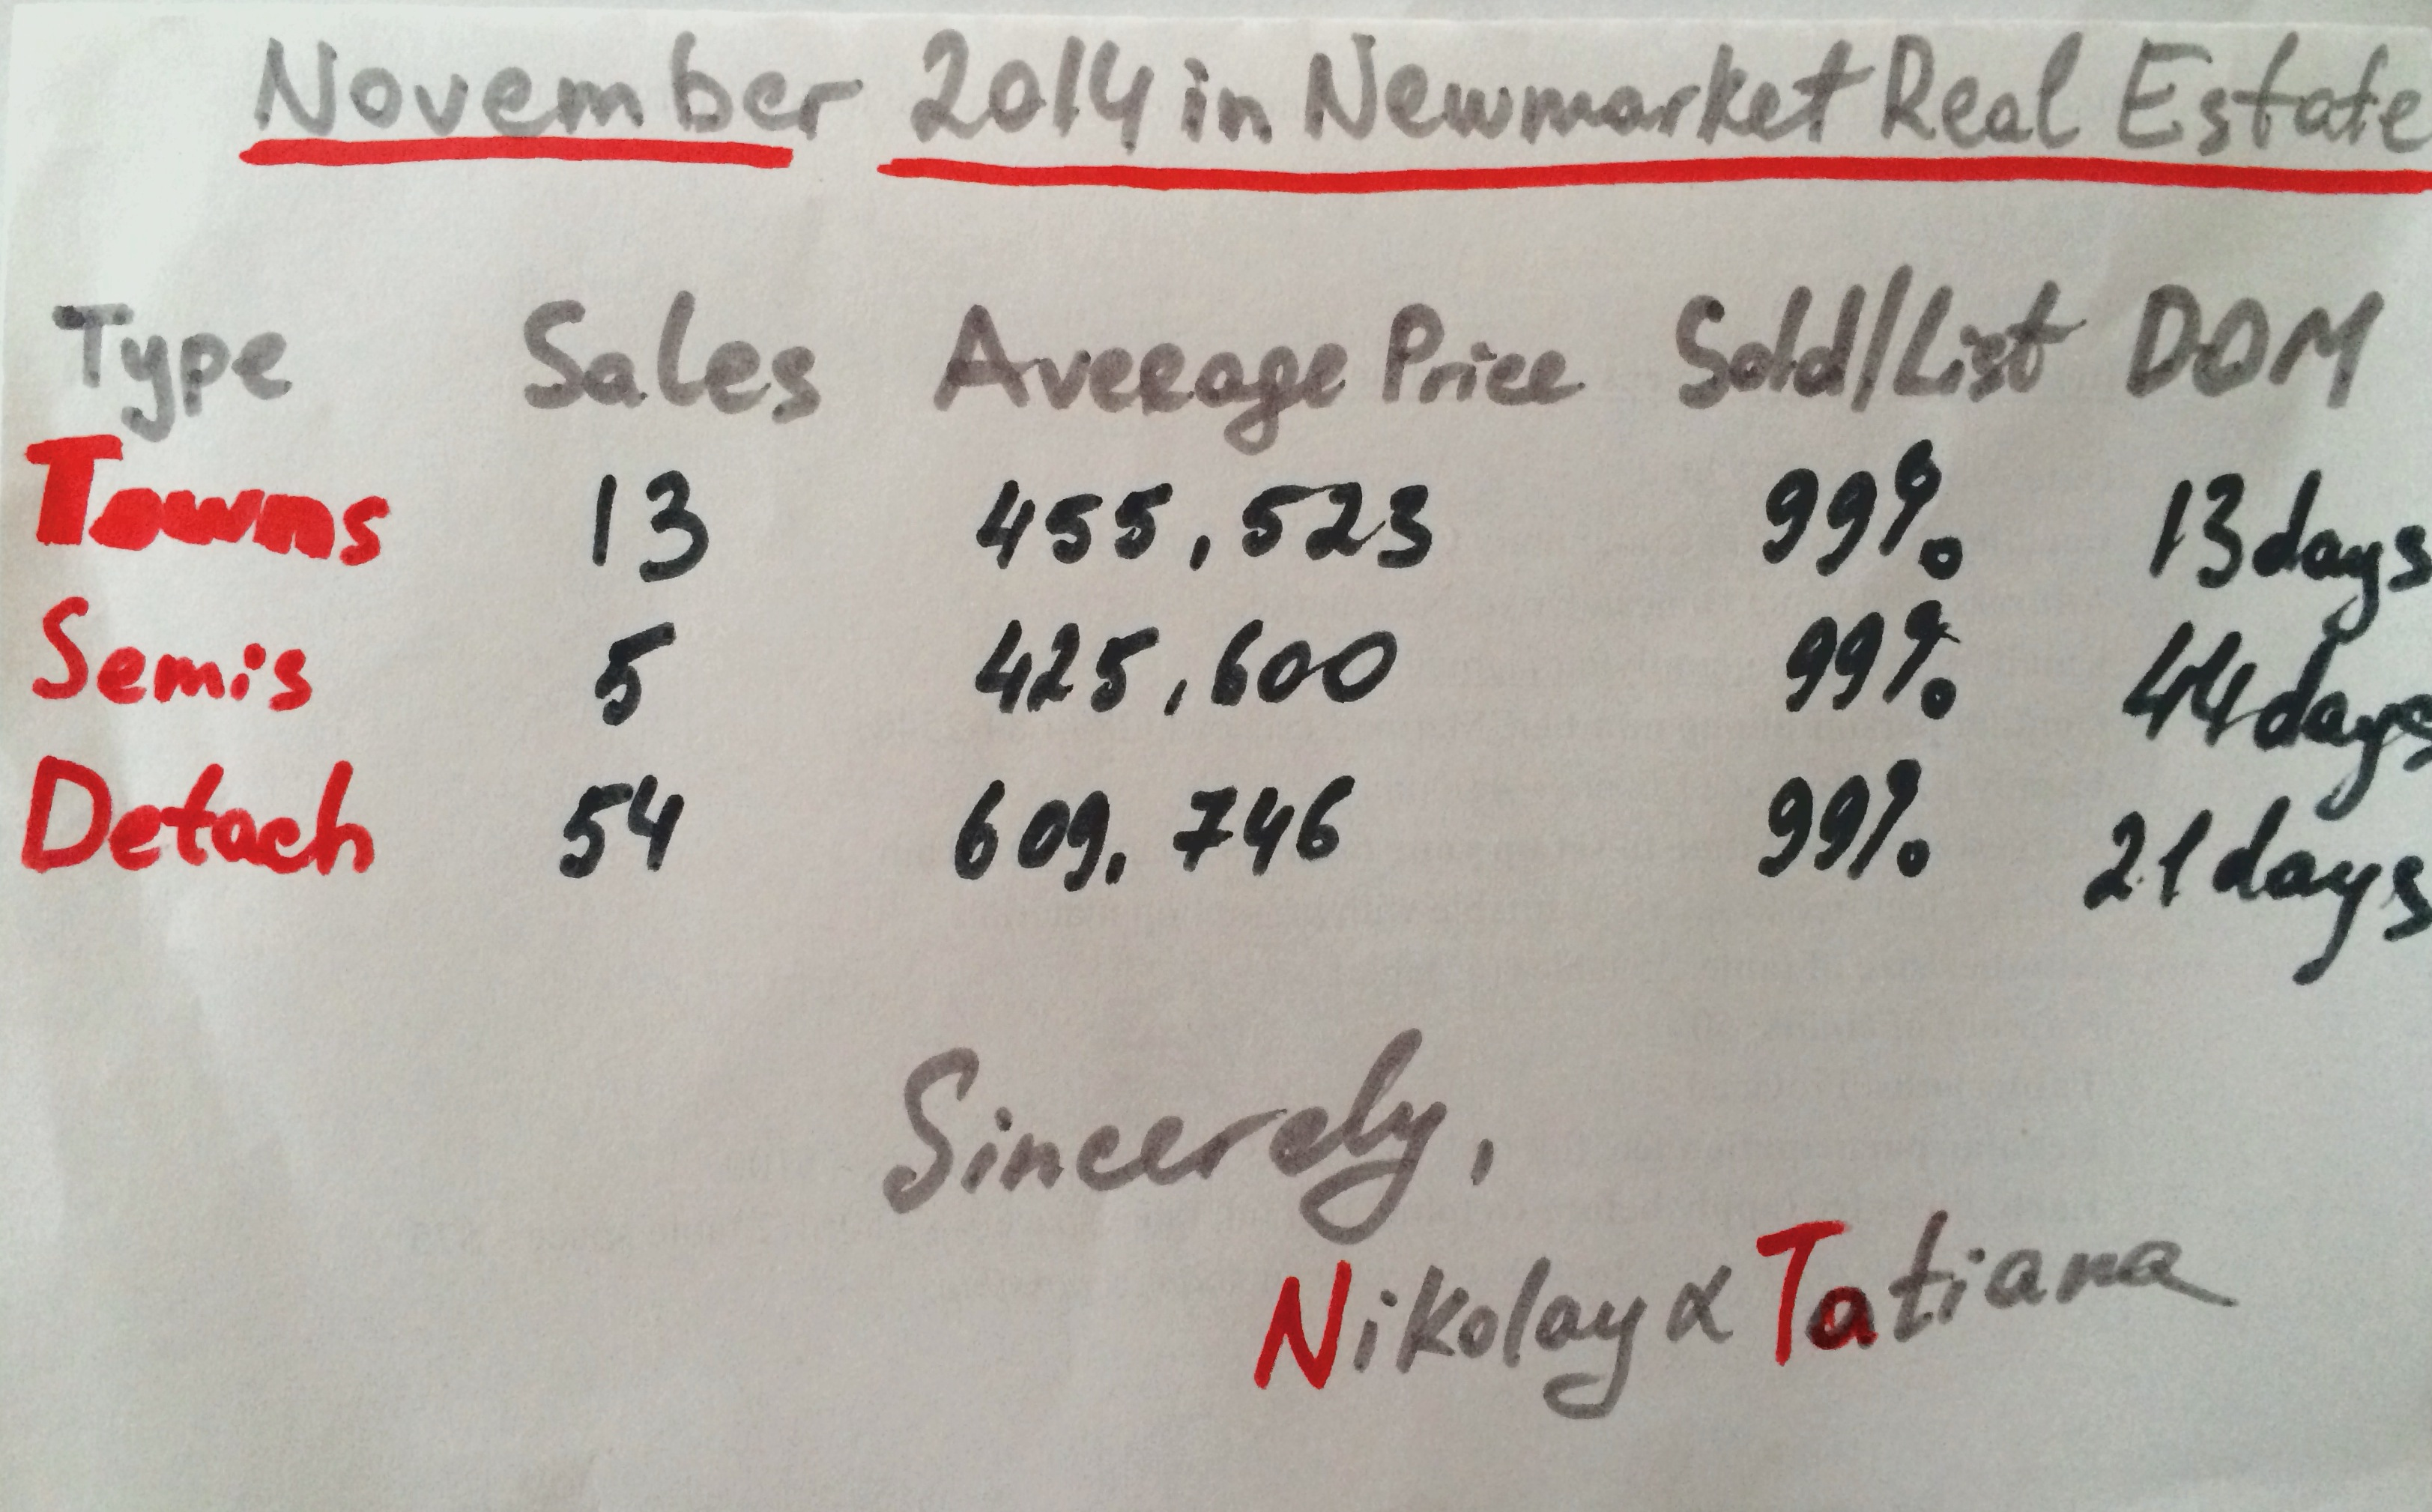 Newmarket Real Estate in numbers for November 2014